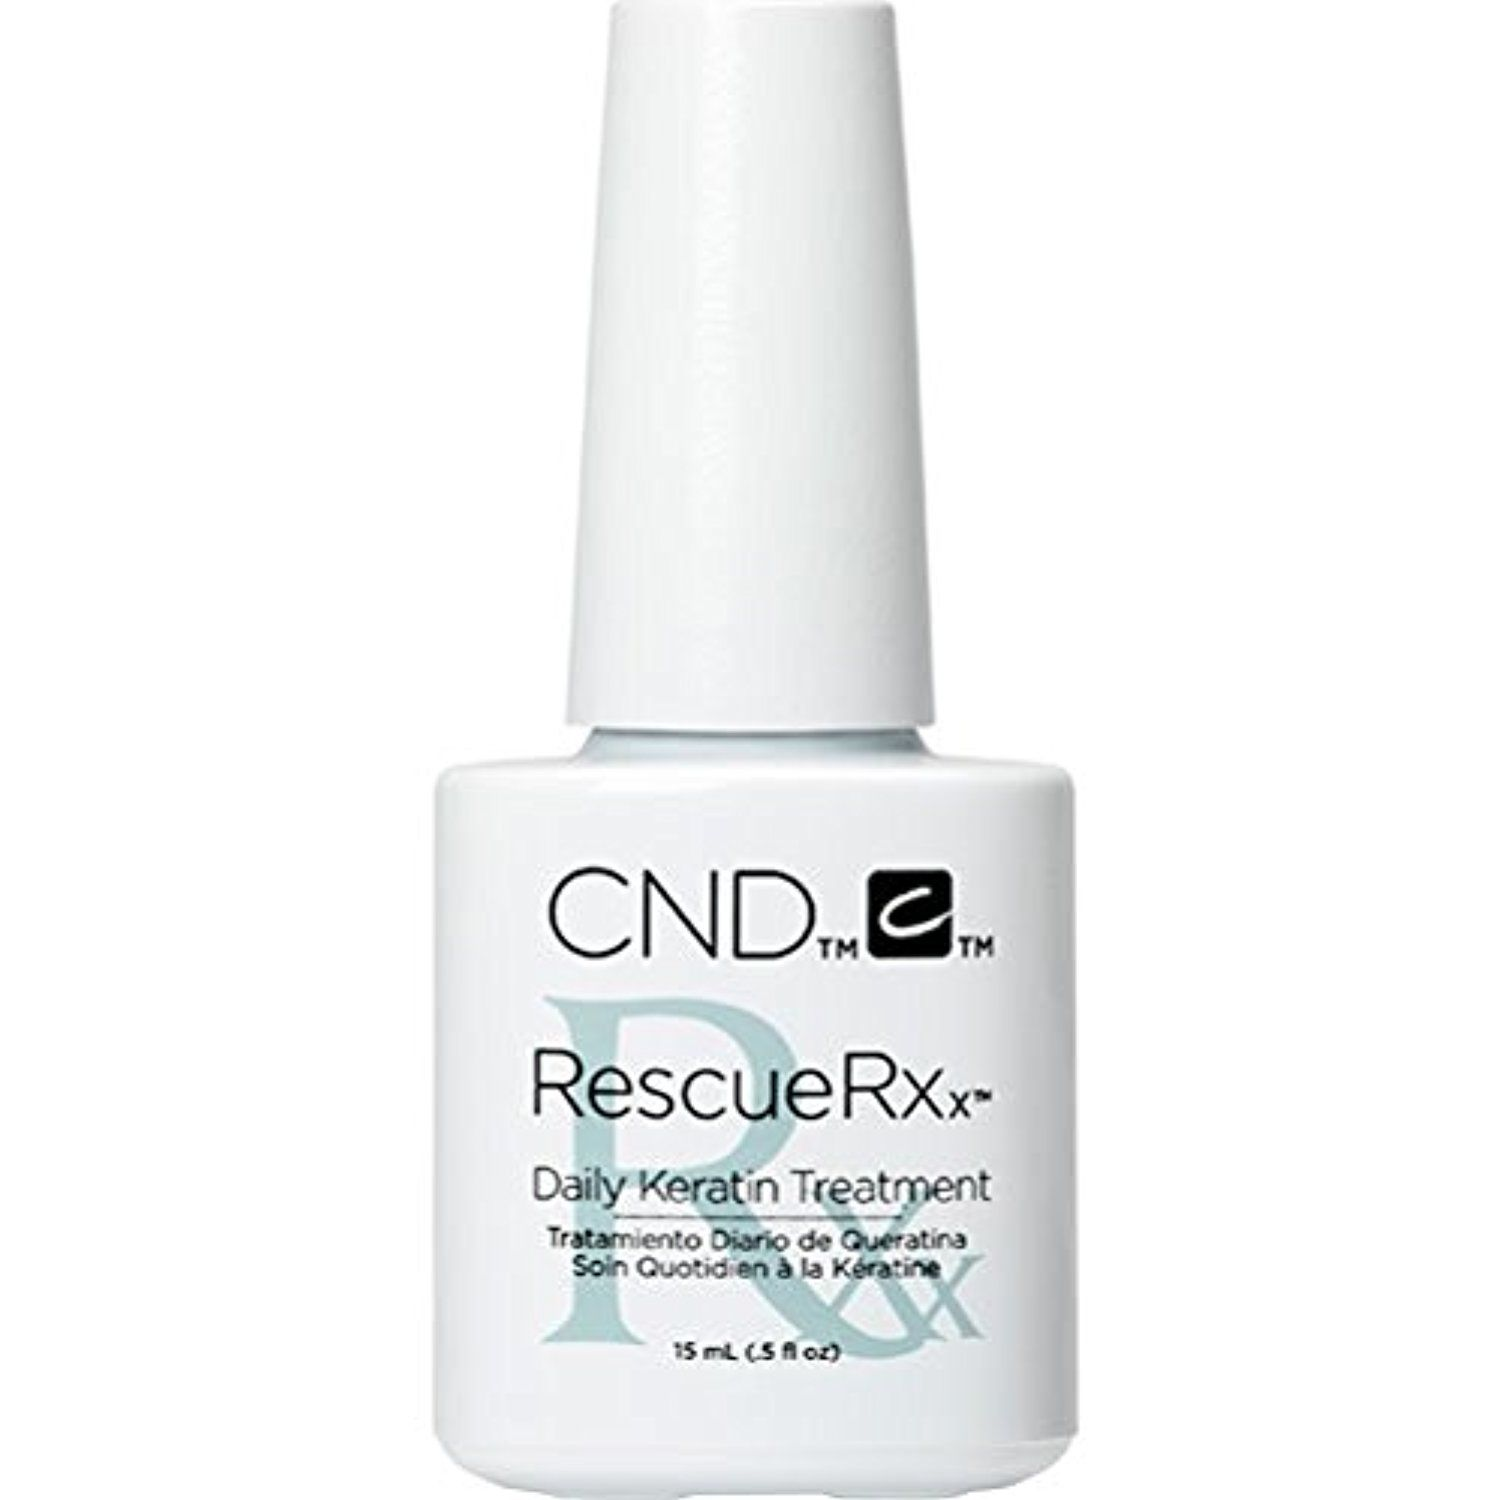 CND RescueRXx Daily Keratin Treatment -- Be sure to check out this ...